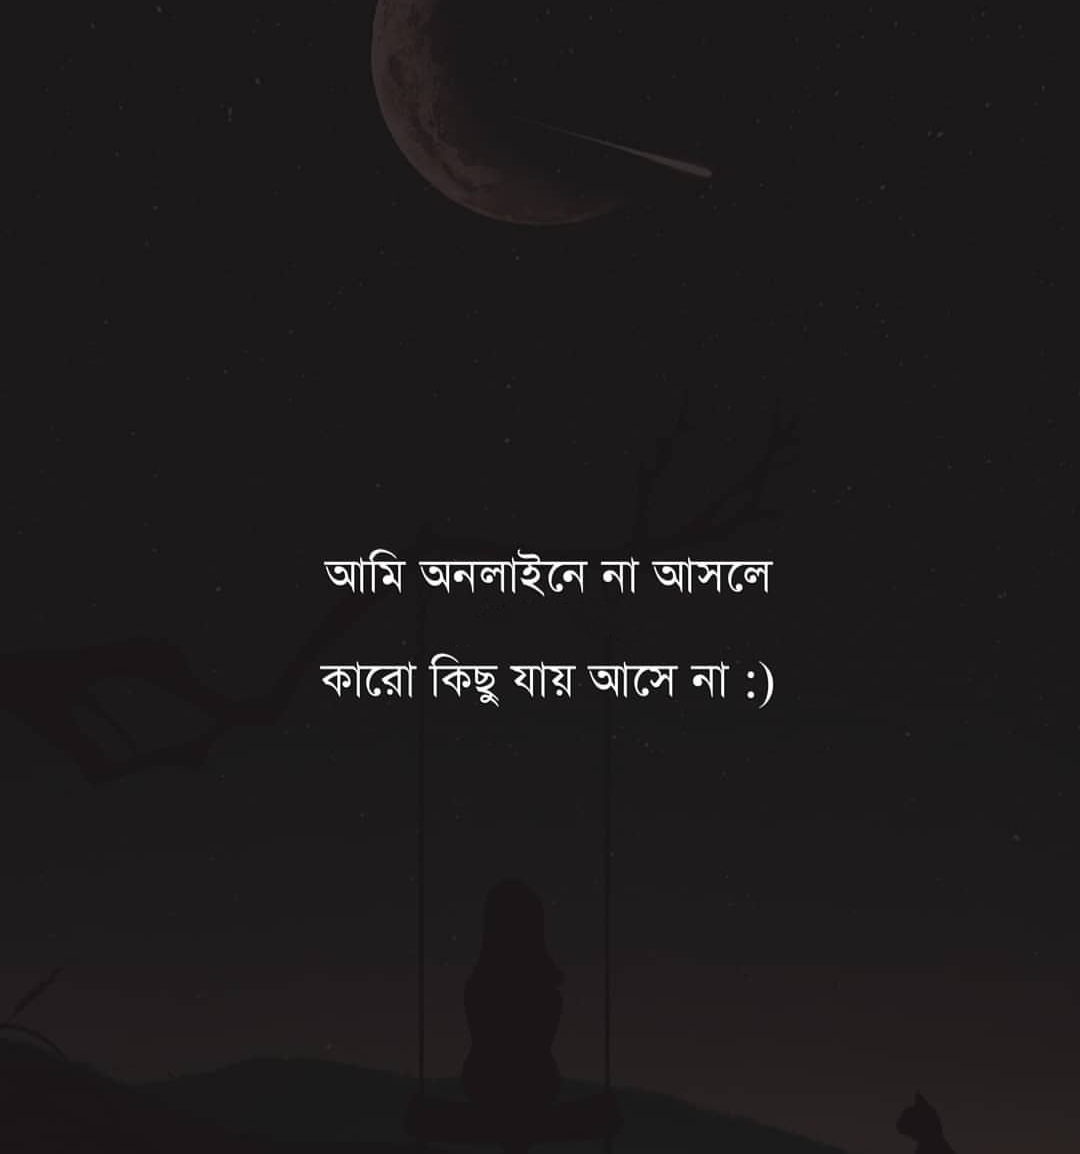 40+ Best Bengali Sad Status & quotes For Facebook, What's app -  40 টি সেরা কষ্টের স্ট্যাটাস - Best Very Sad Quotes for fb